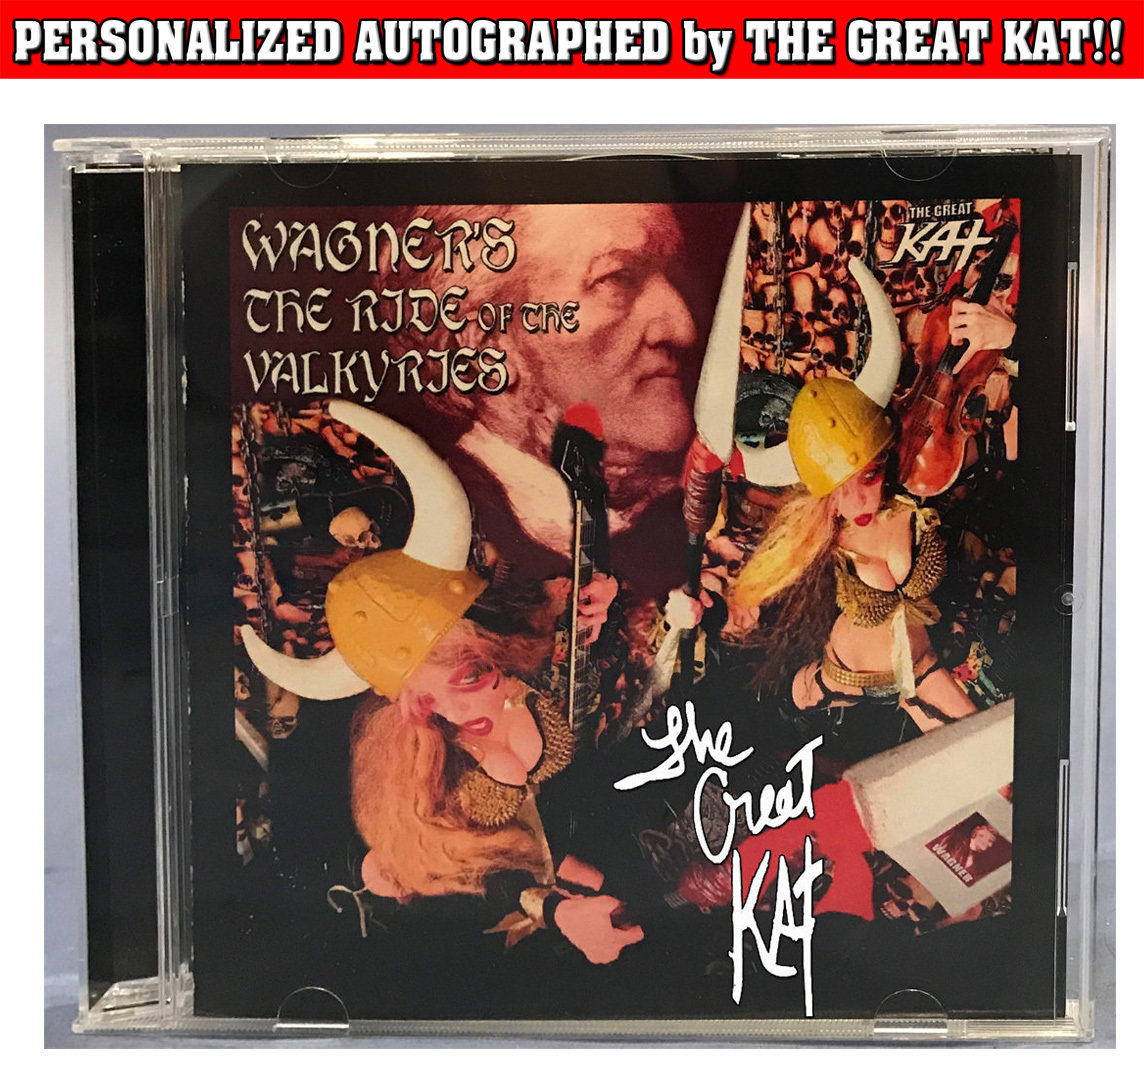 """WAGNER'S THE RIDE OF THE VALKYRIES"" SINGLE Music CD (1:34)! PERSONALIZED AUTOGRAPHED by THE GREAT KAT! (Signed to Customer's Name)​"